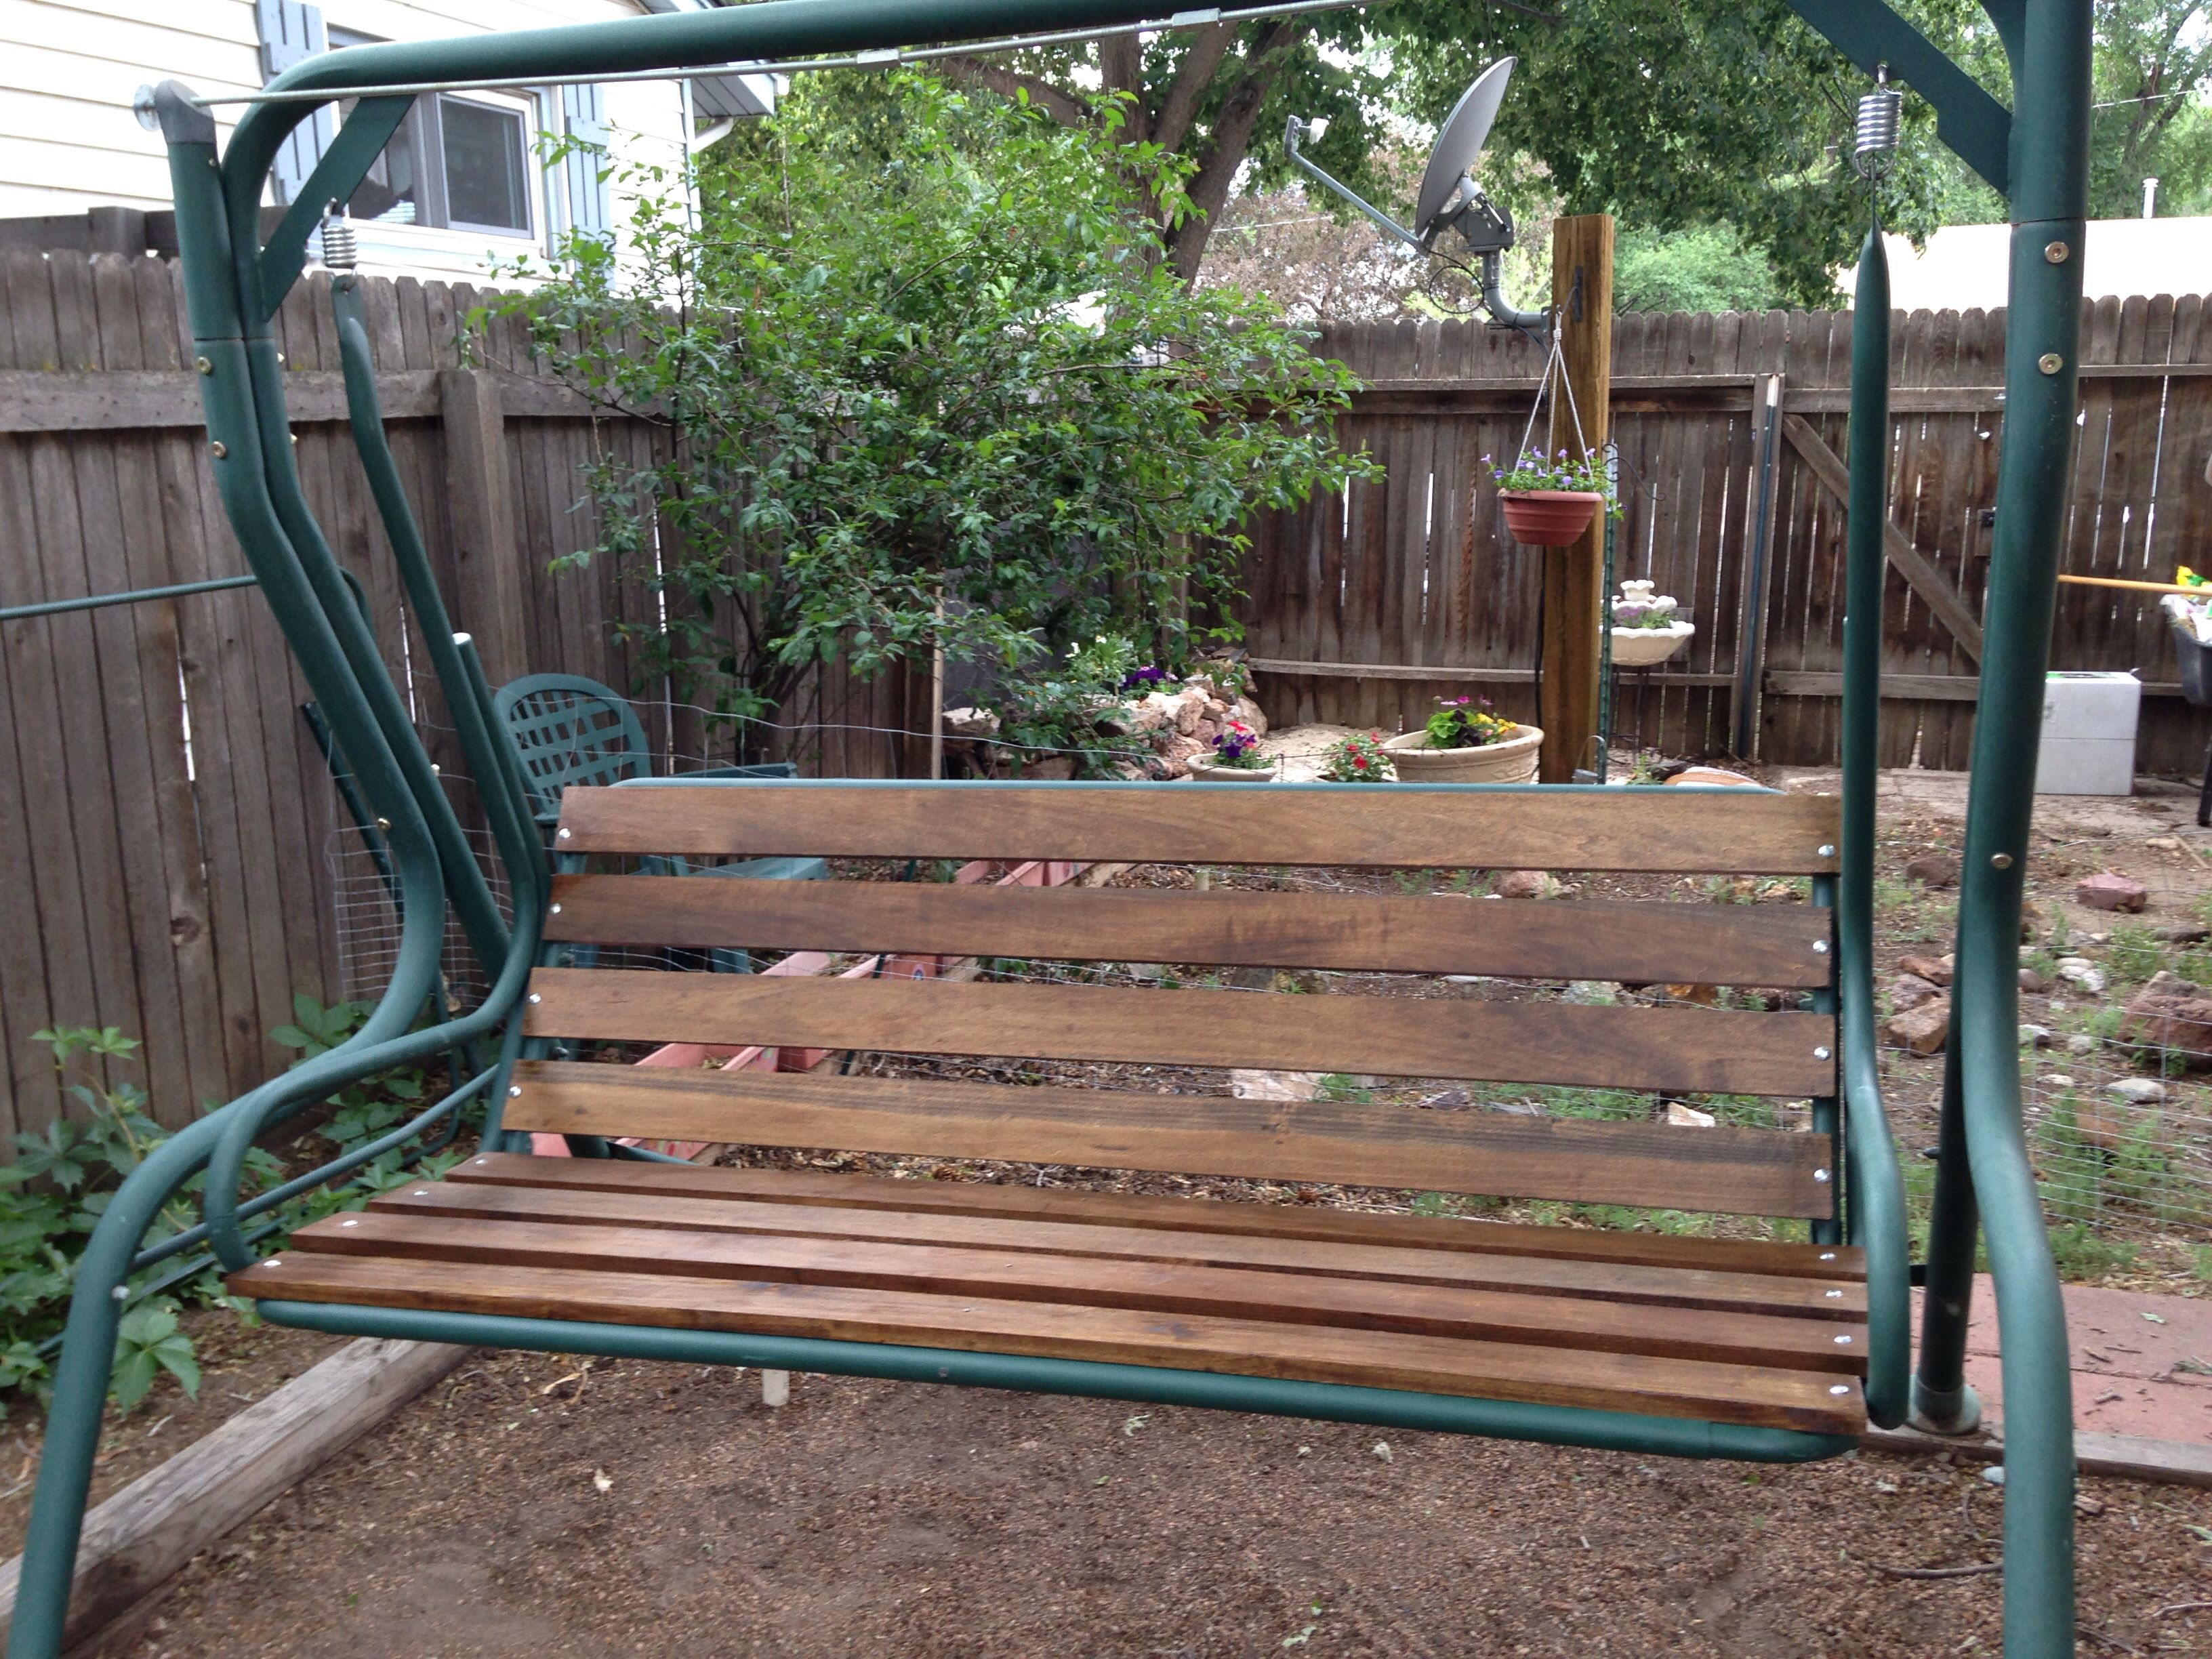 Finished Swing Lawn Garden Seat Patio Chairs Diy